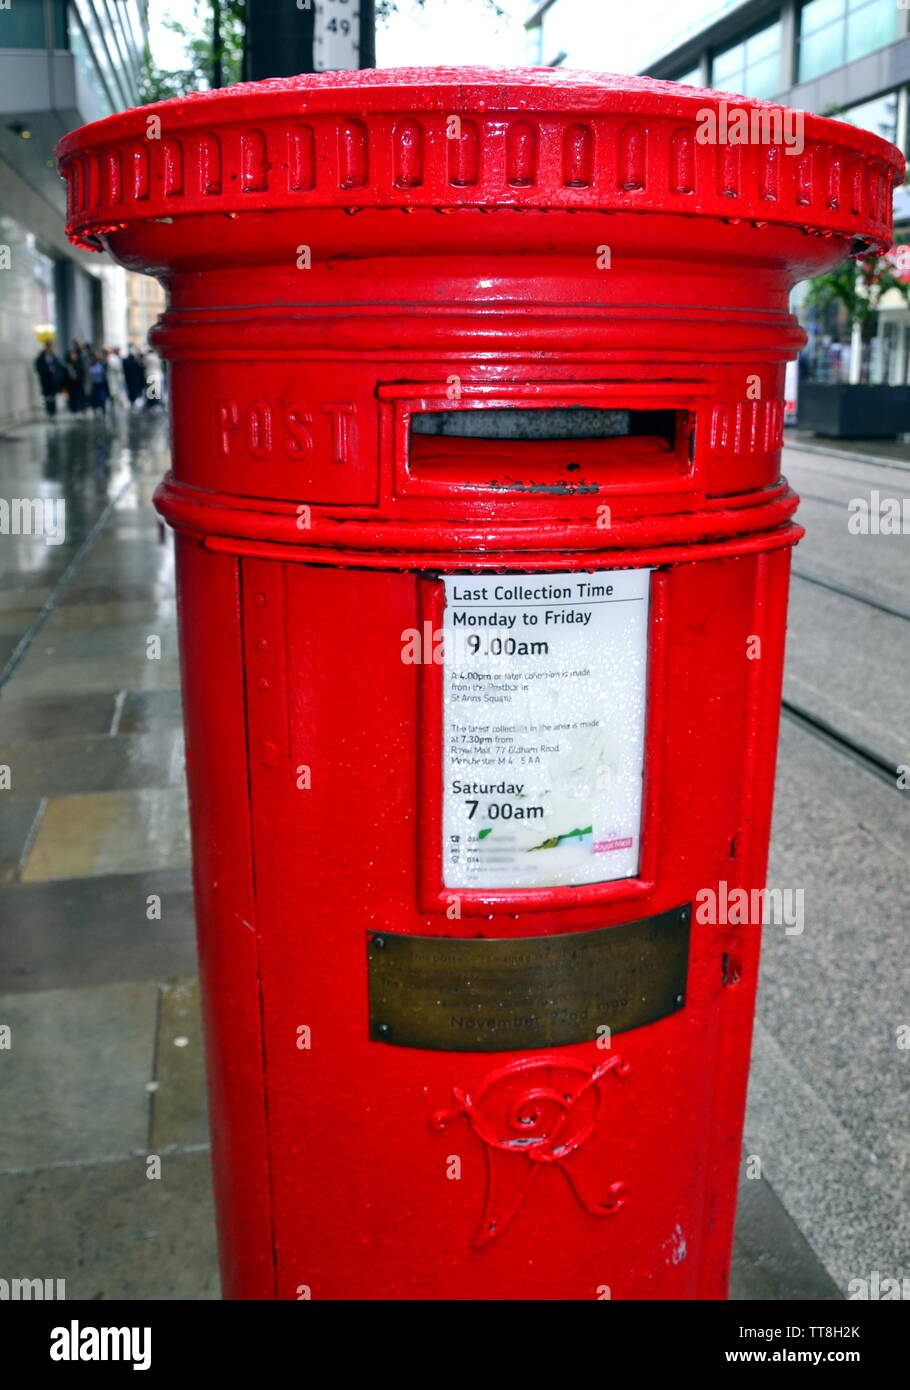 June 15, 2019, marks the 23rd anniversary of the IRA bomb which devastated the city centre of Manchester uk in 1996. This postbox on Corporation Street remained standing and bears a memorial plaque to mark this. The brass plaque carries the inscription: 'This postbox remained standing almost undamaged on June 15, 1996 when this area was devastated by a bomb. The box was removed during the rebuilding of the city centre and was returned to its original site on November 22nd 1999'. The bomb injured some 200 people. No-one has yet been charged with planting the bomb. - Stock Image